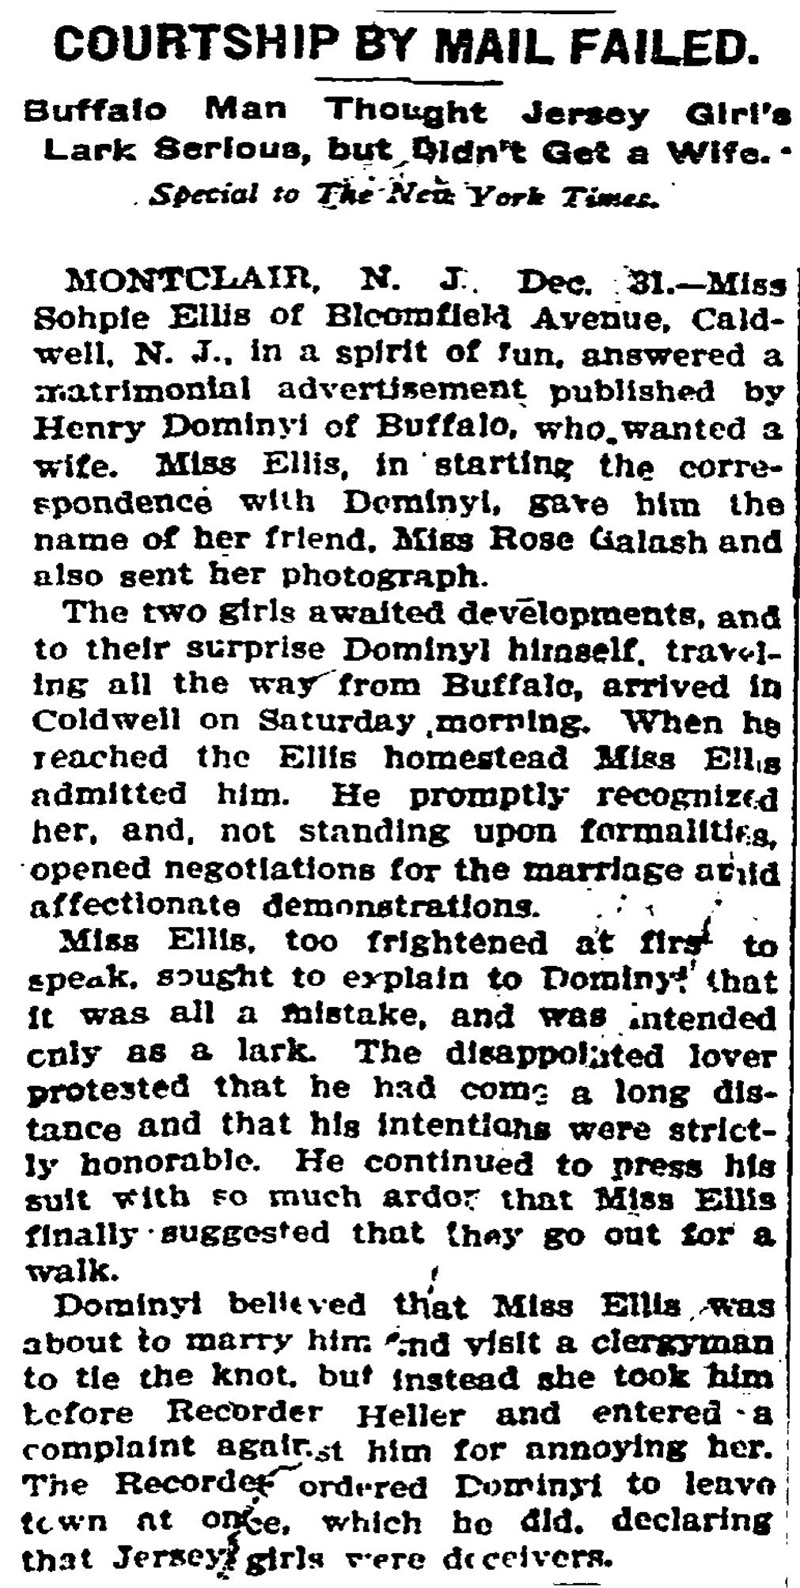 mail order brides letters history Mail-order brides the term mail-order bride, as it applies to a marriage arranged via correspondence between american men and women in the great plains in the nineteenth century, is largely a misnomer.